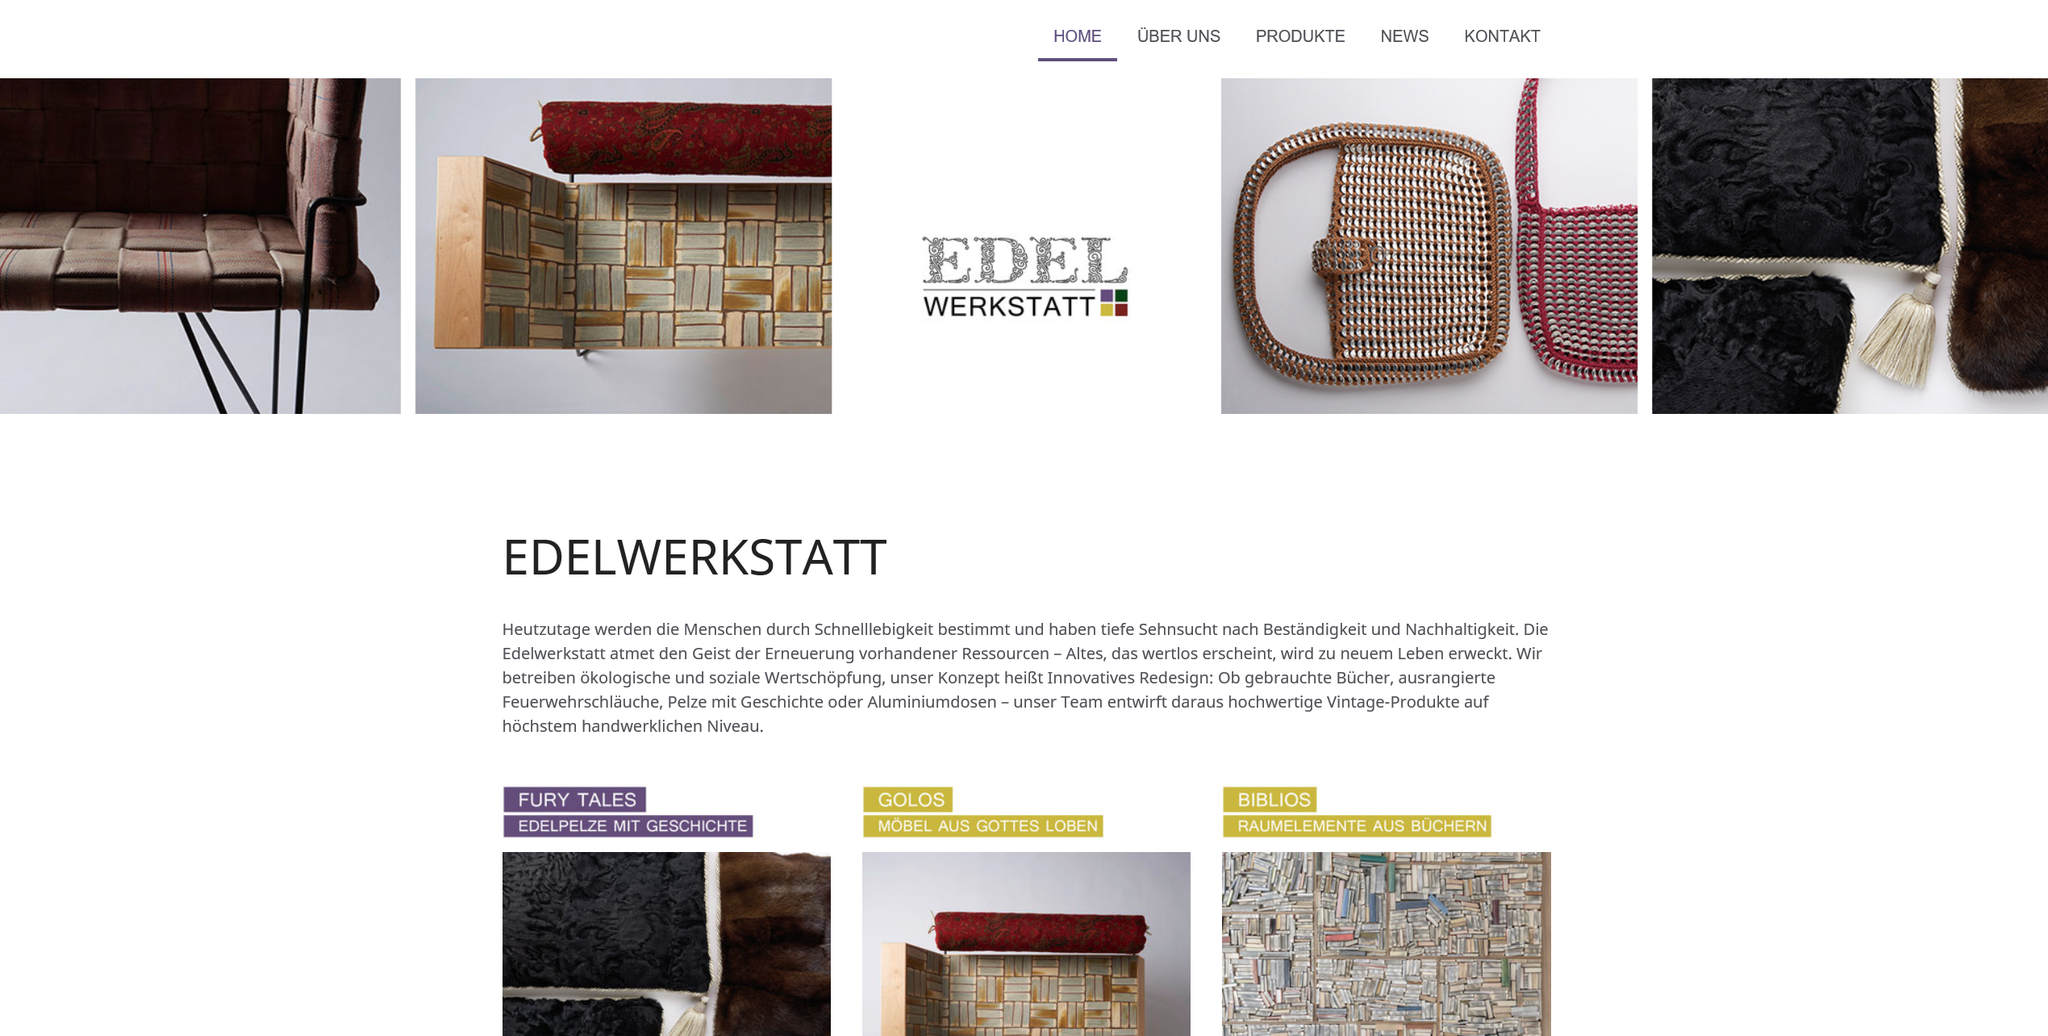 www.edelwerkstatt.at